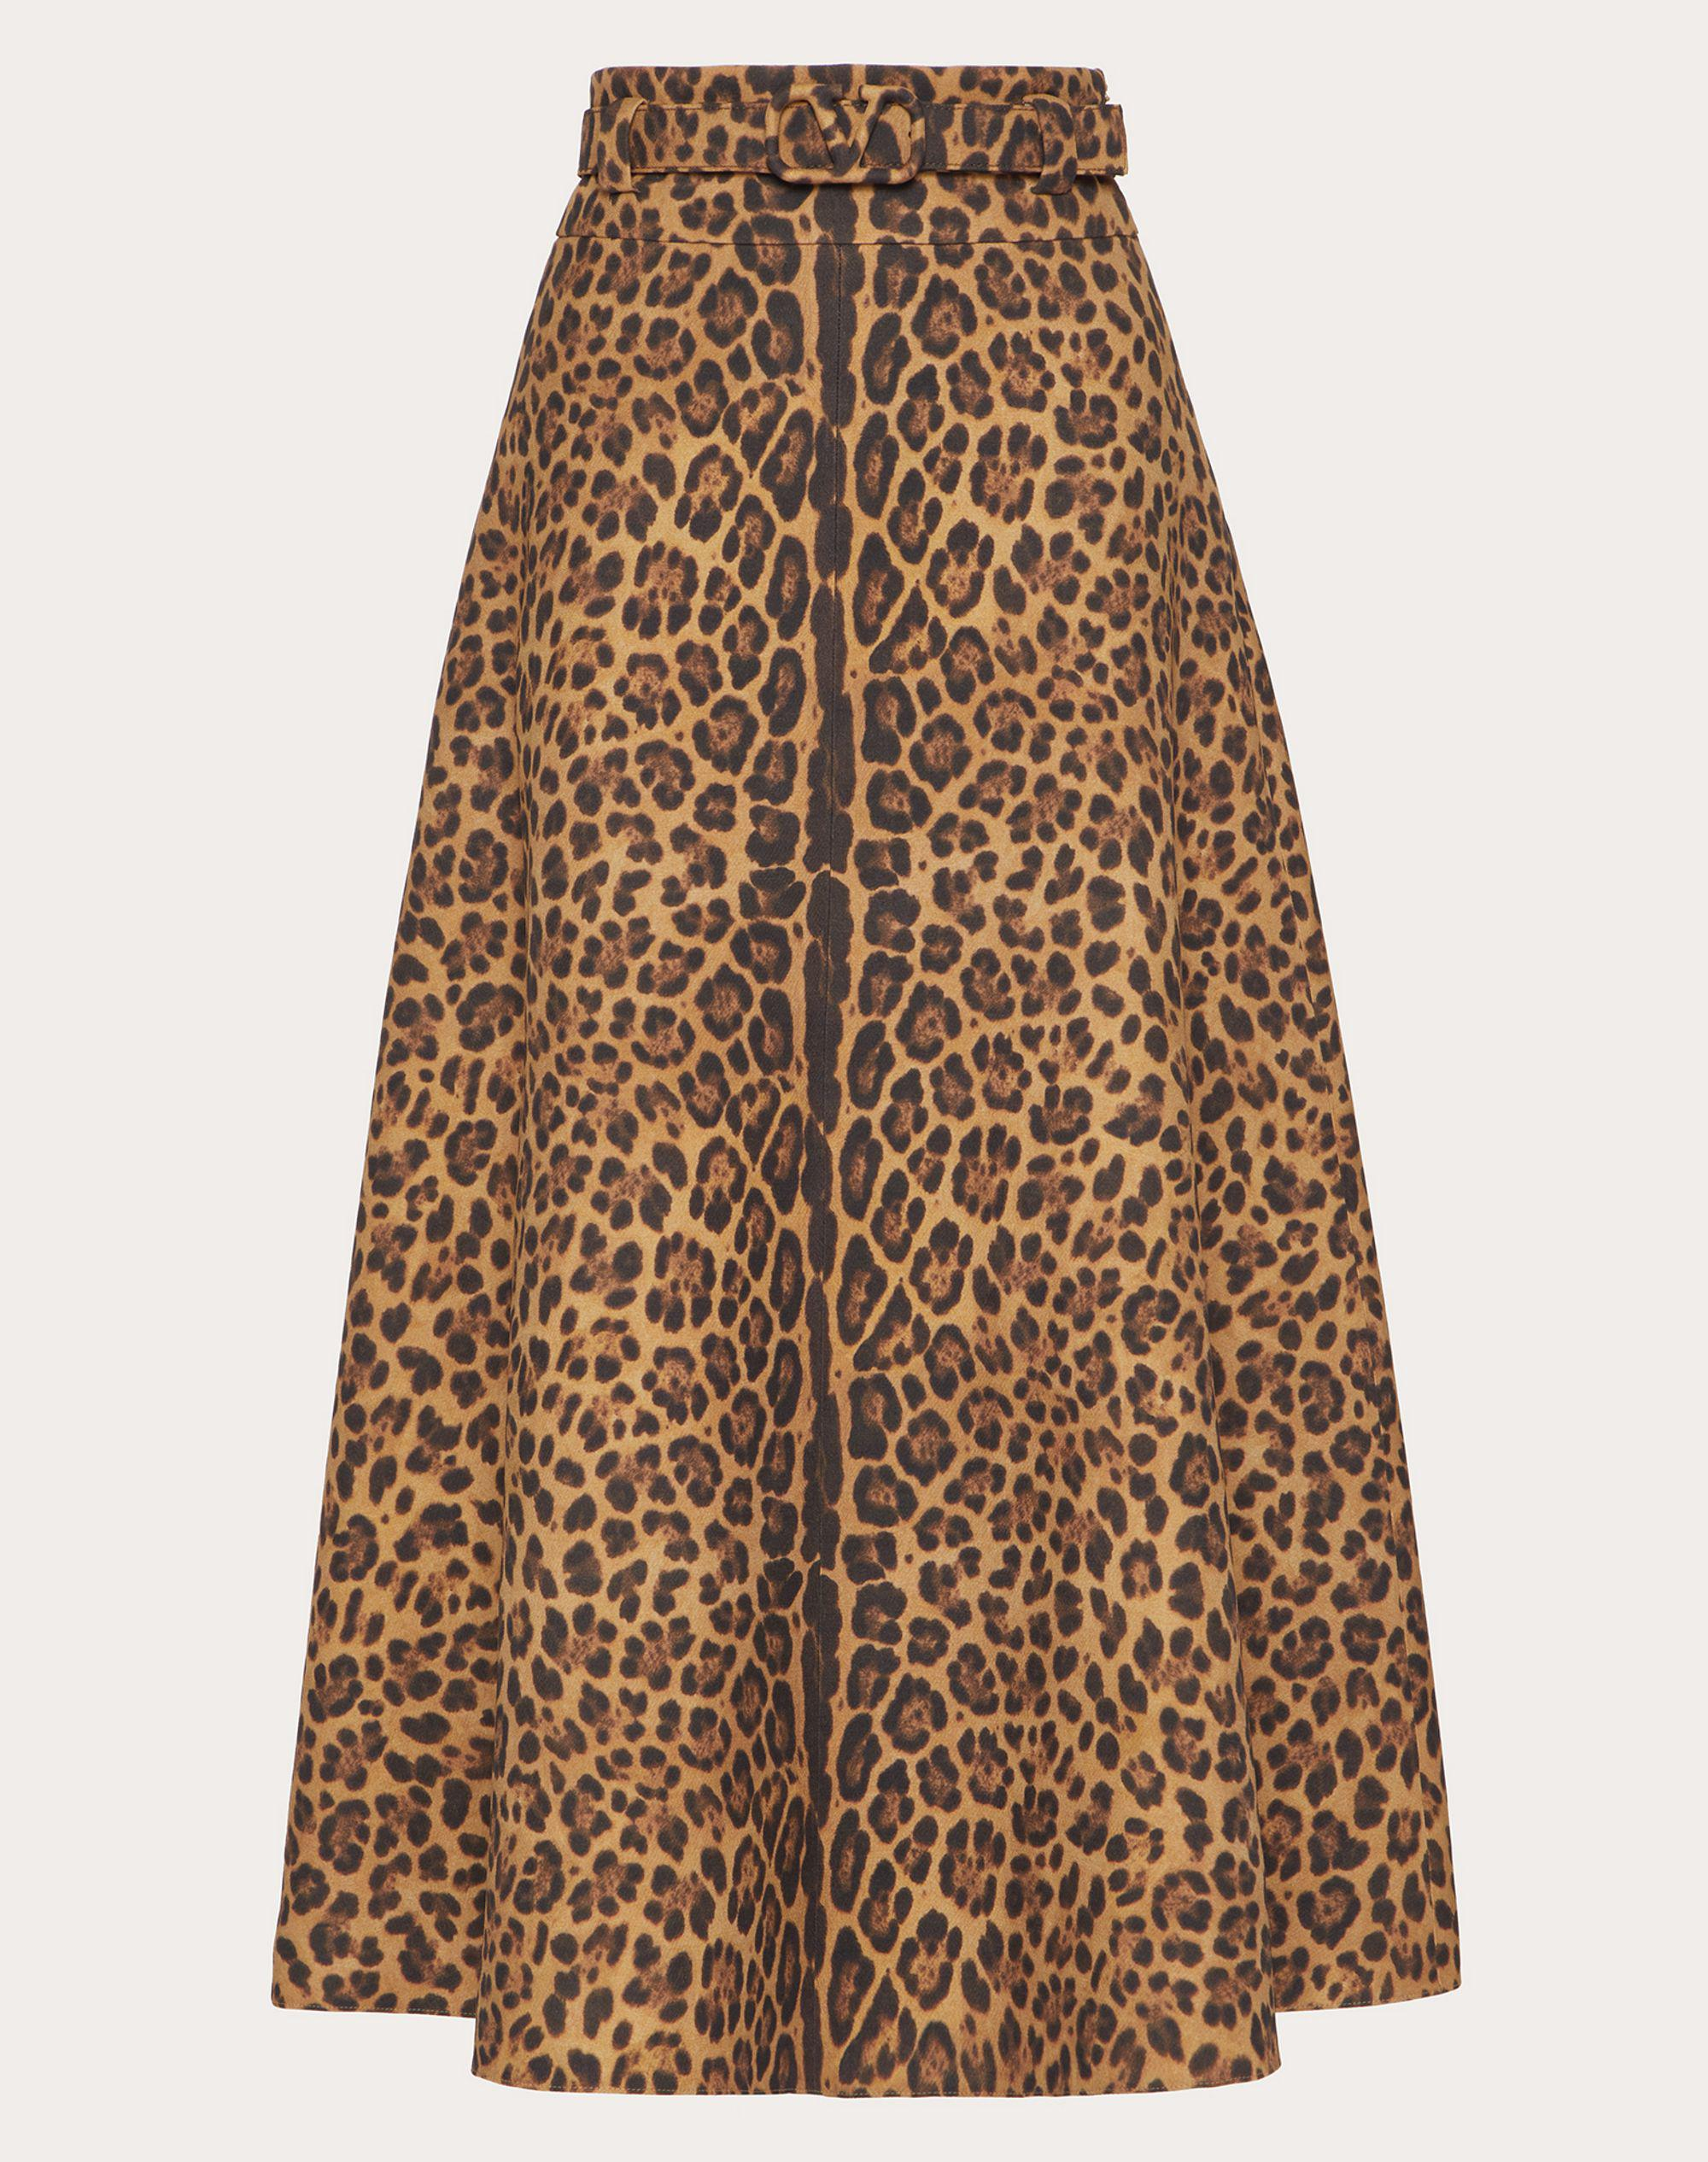 PRINTED CREPE COUTURE SKIRT 3